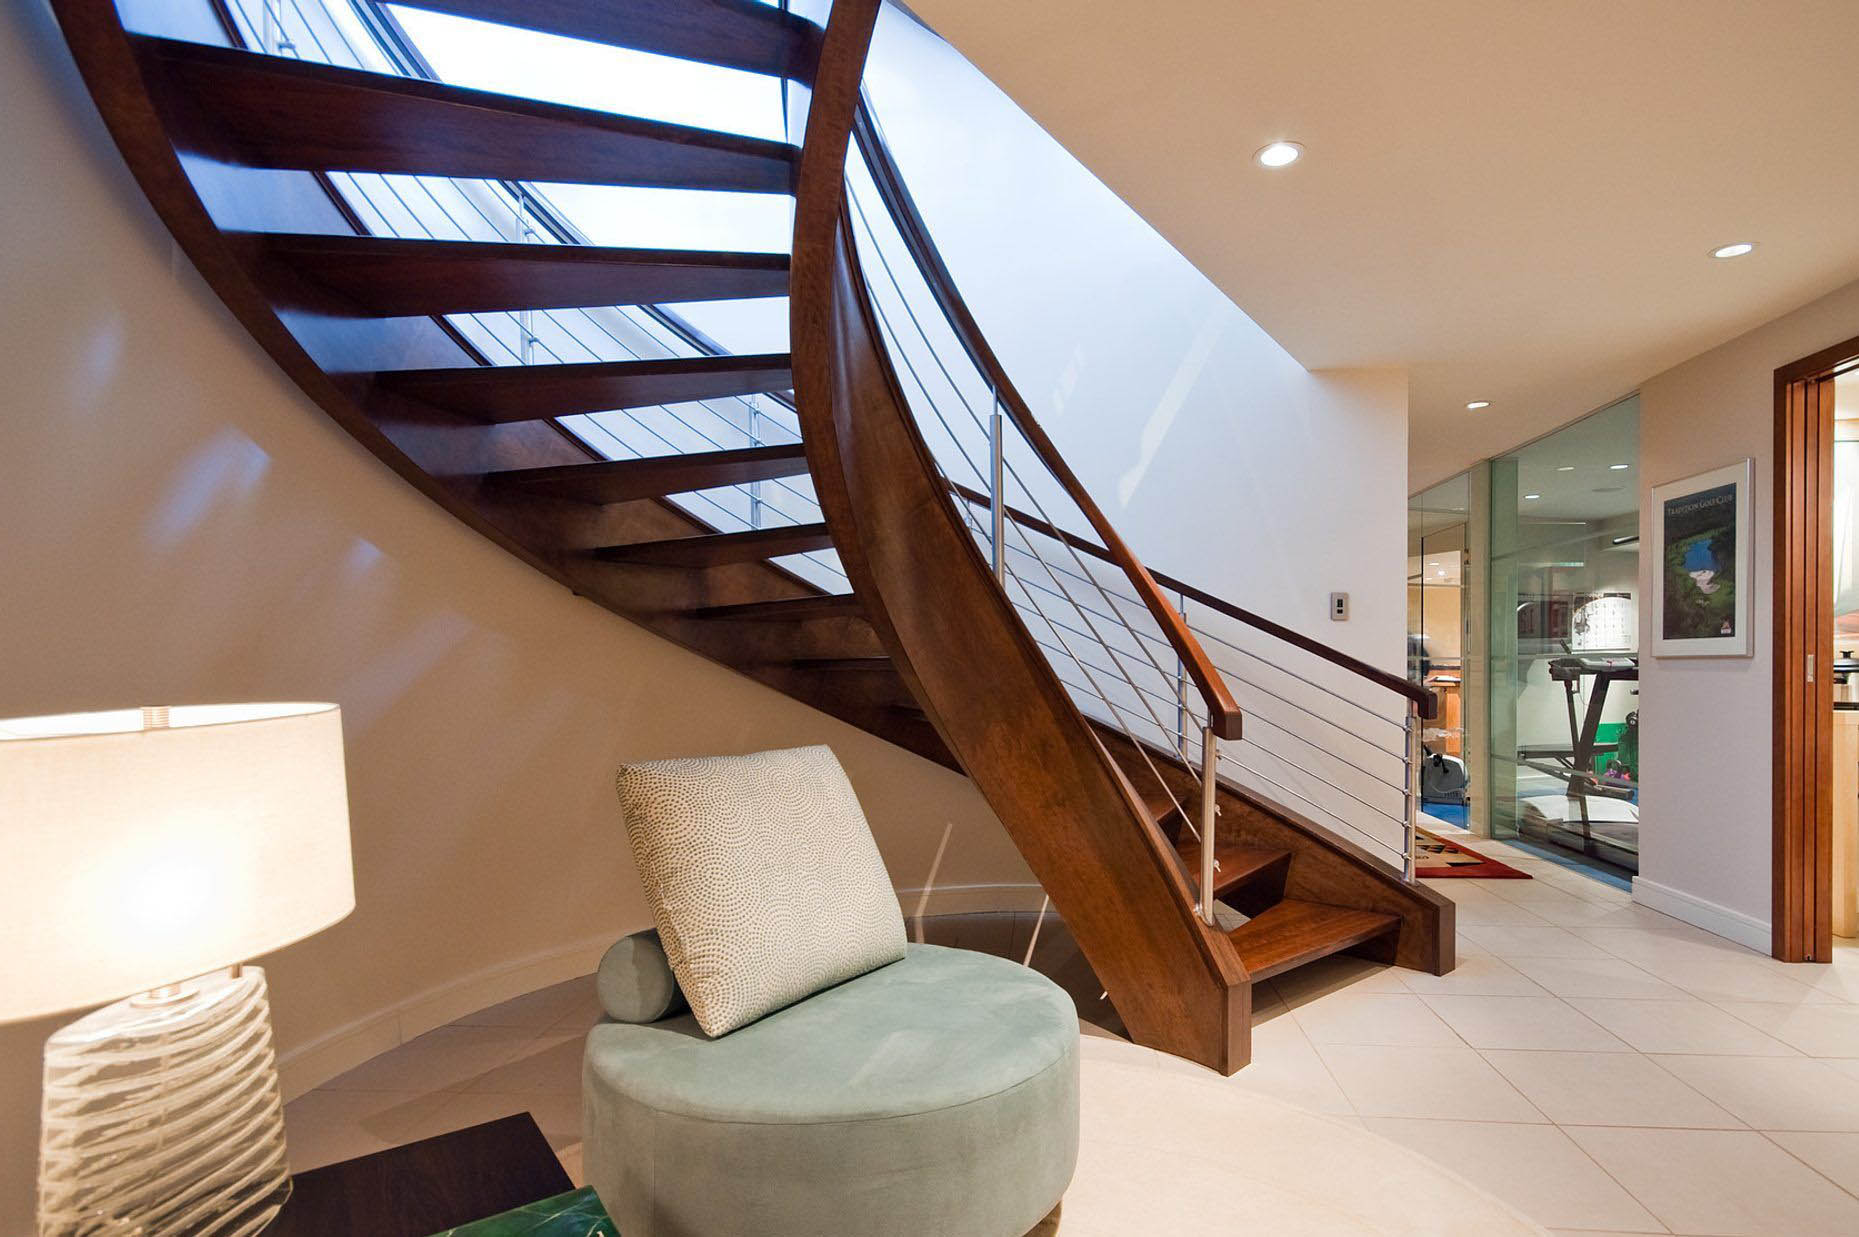 Sexy curved modern staircase design with real wood stained a medium brown. Open risers. metal balusters with wood rail.